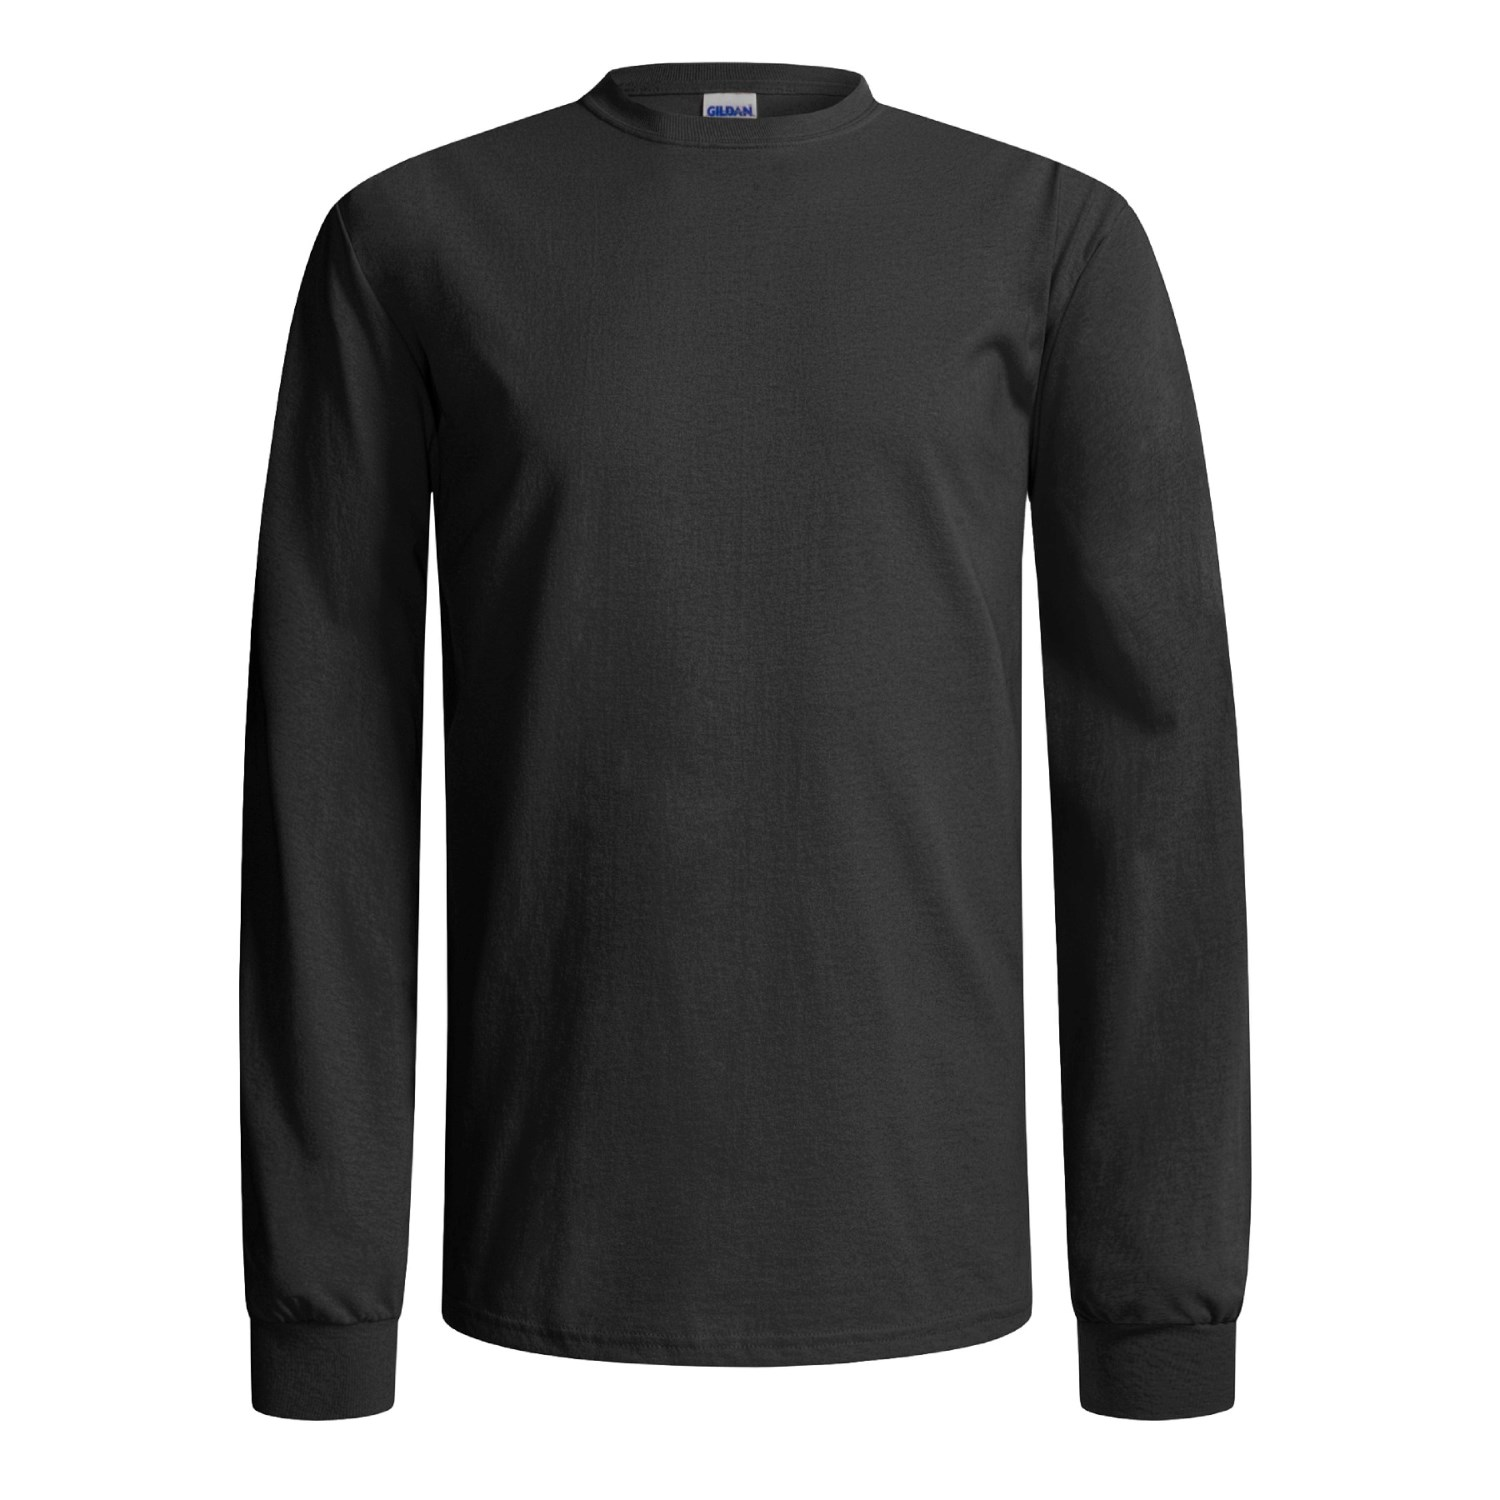 Hanes womens long sleeve t shirt male models picture Womens black tee shirt